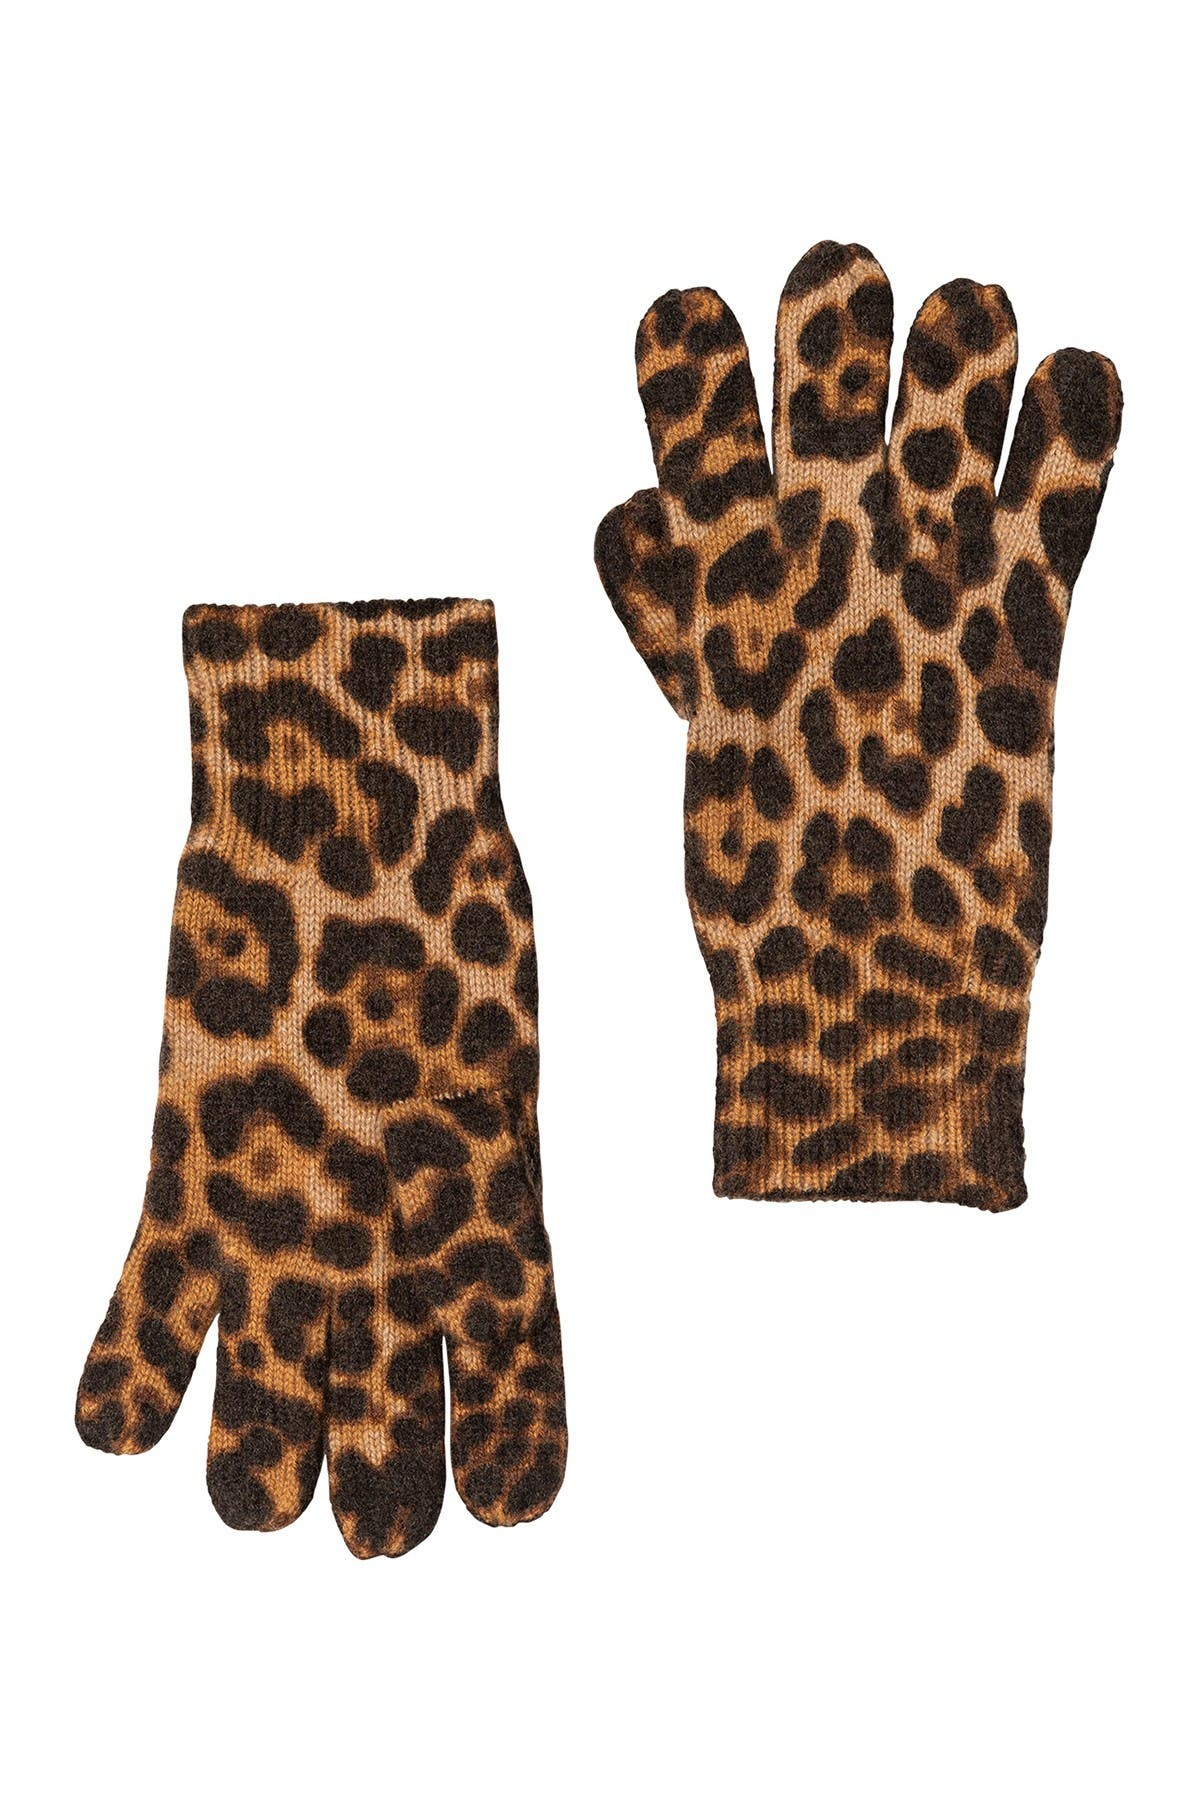 Image of AMICALE Cashmere Animal Print Gloves